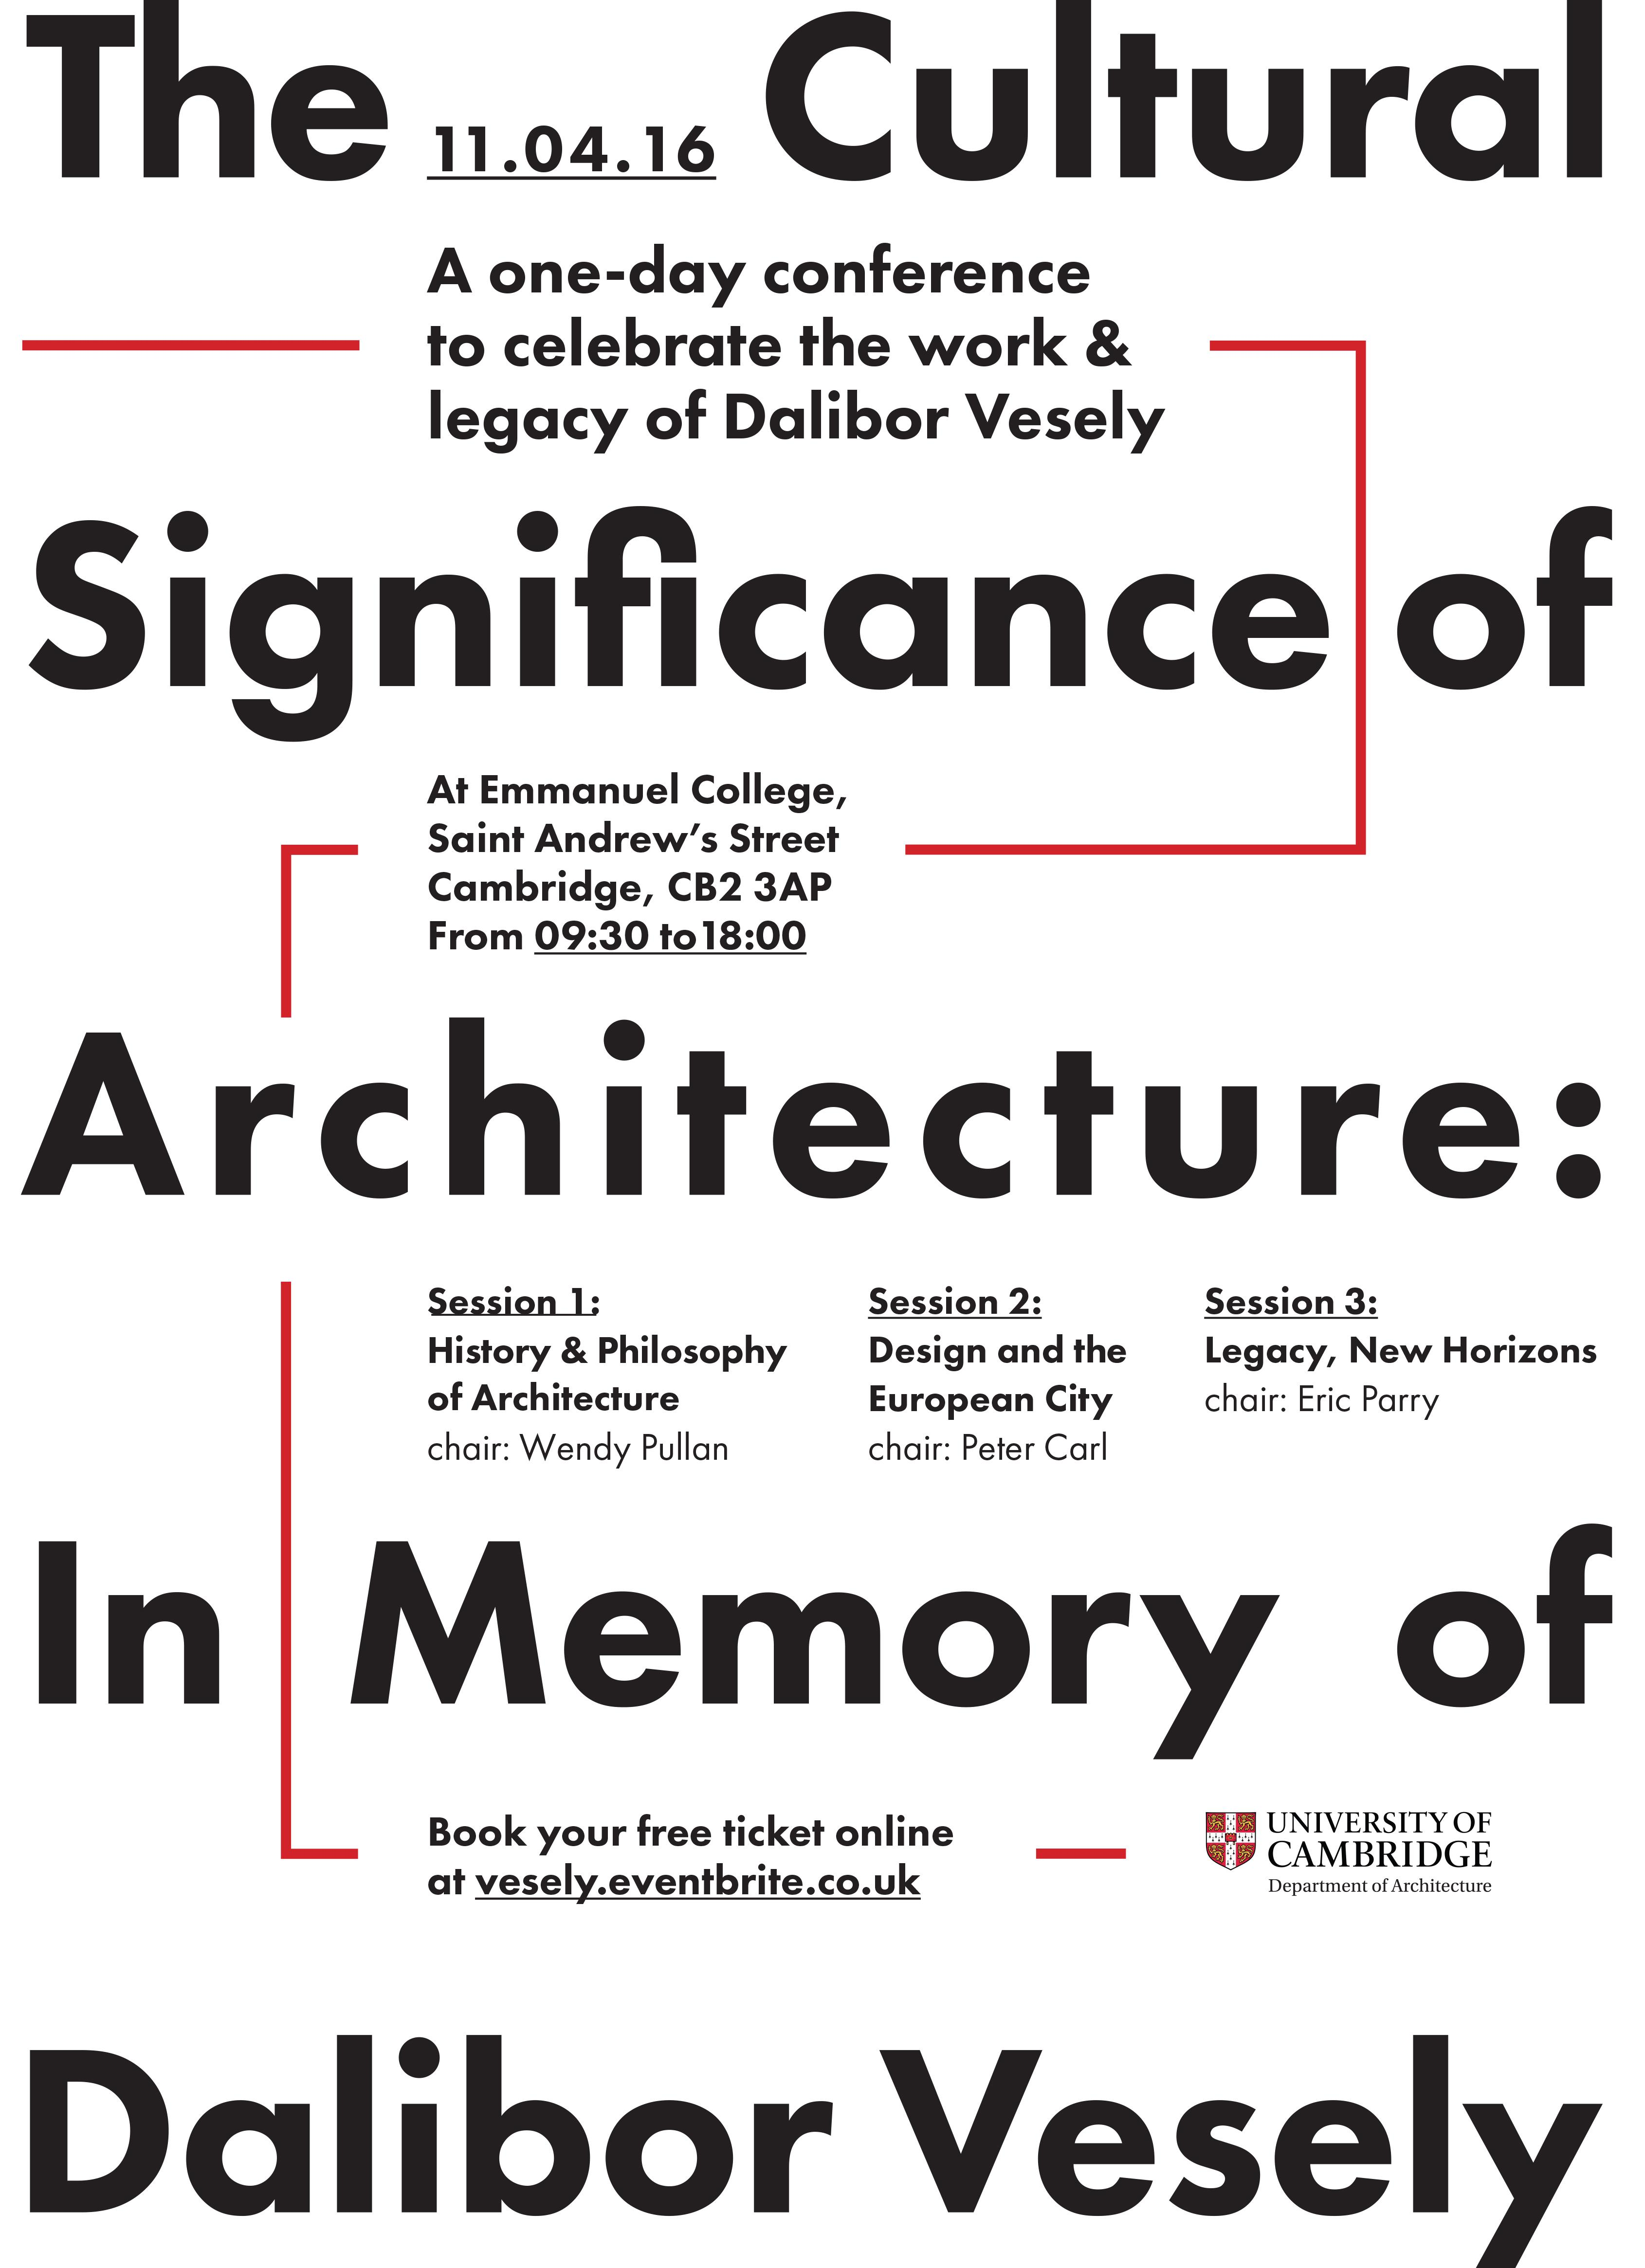 Dalibor Vesely Conference Poster